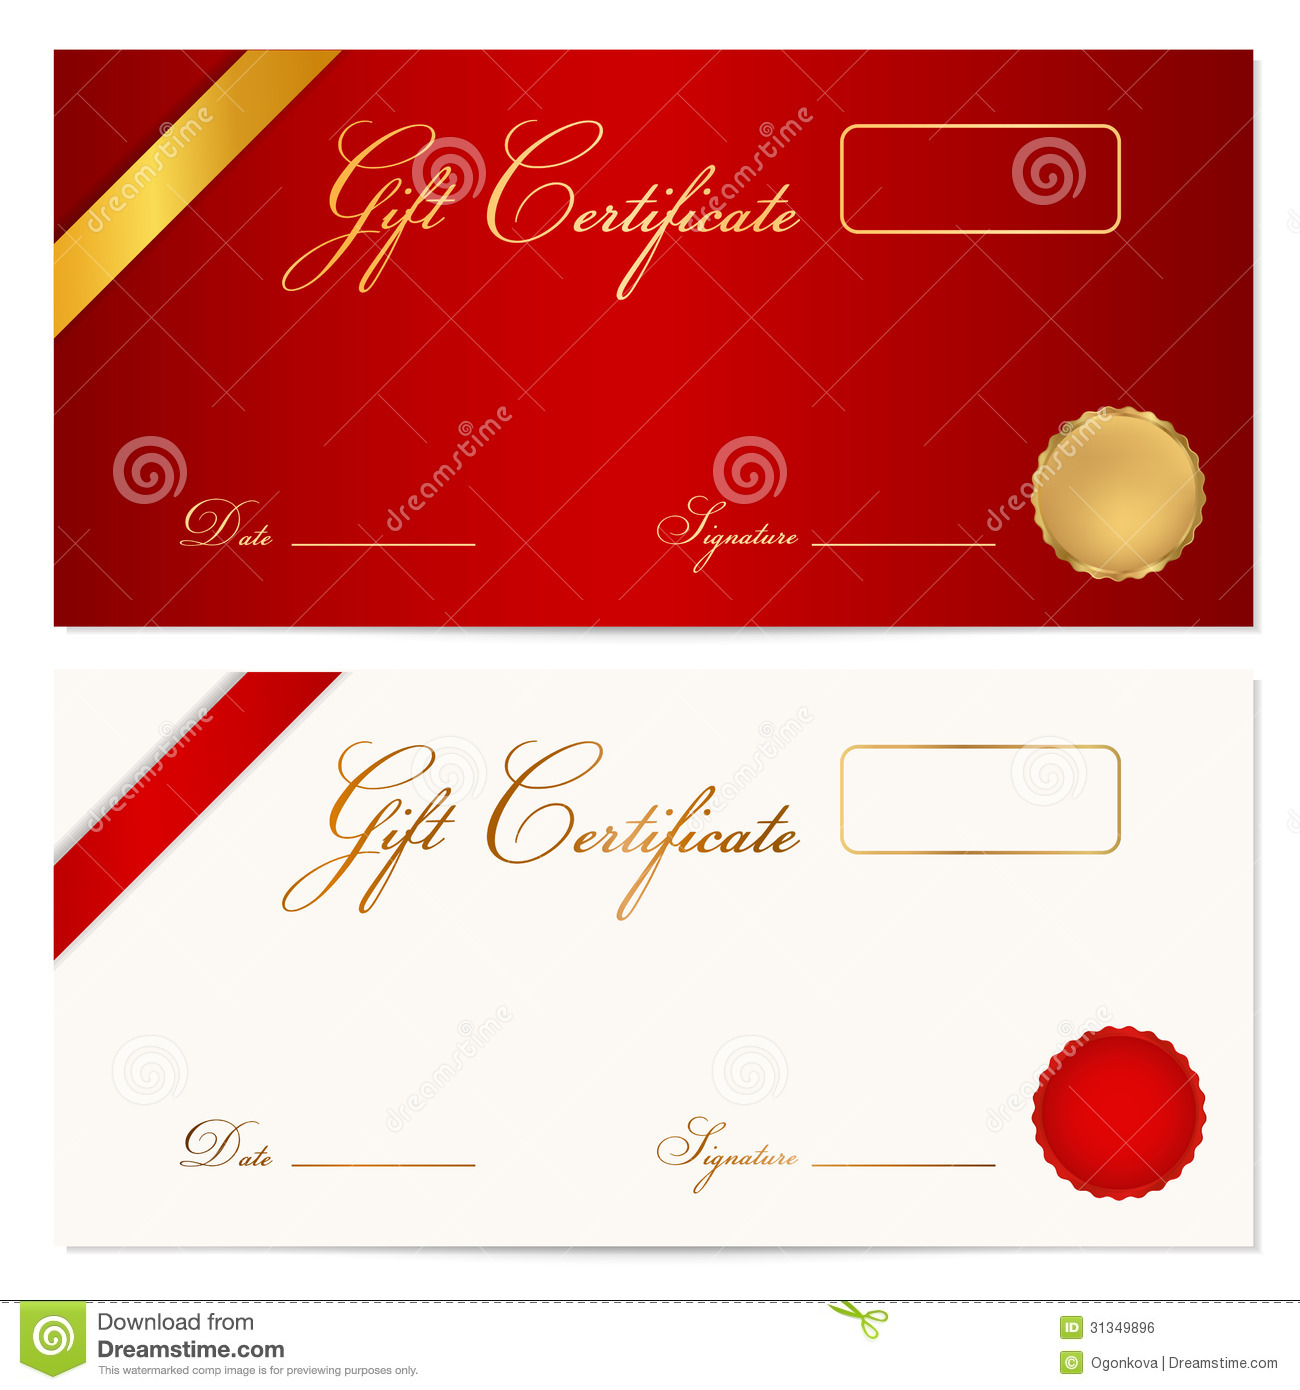 Gift Certificate (Voucher) Template. Wax Seal